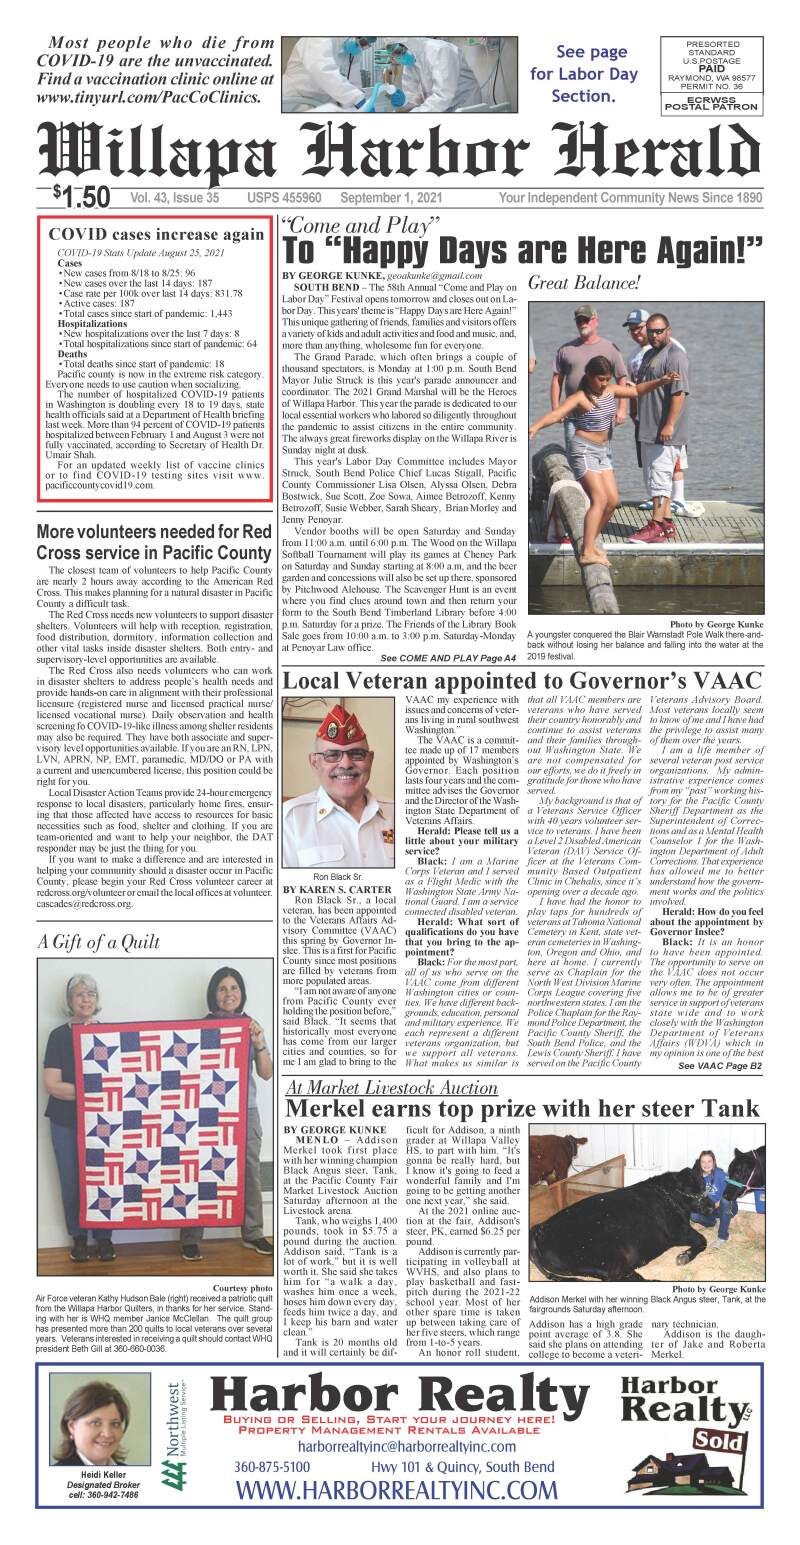 September 1, 2021 Willapa Harbor Herald and Pacific County Press